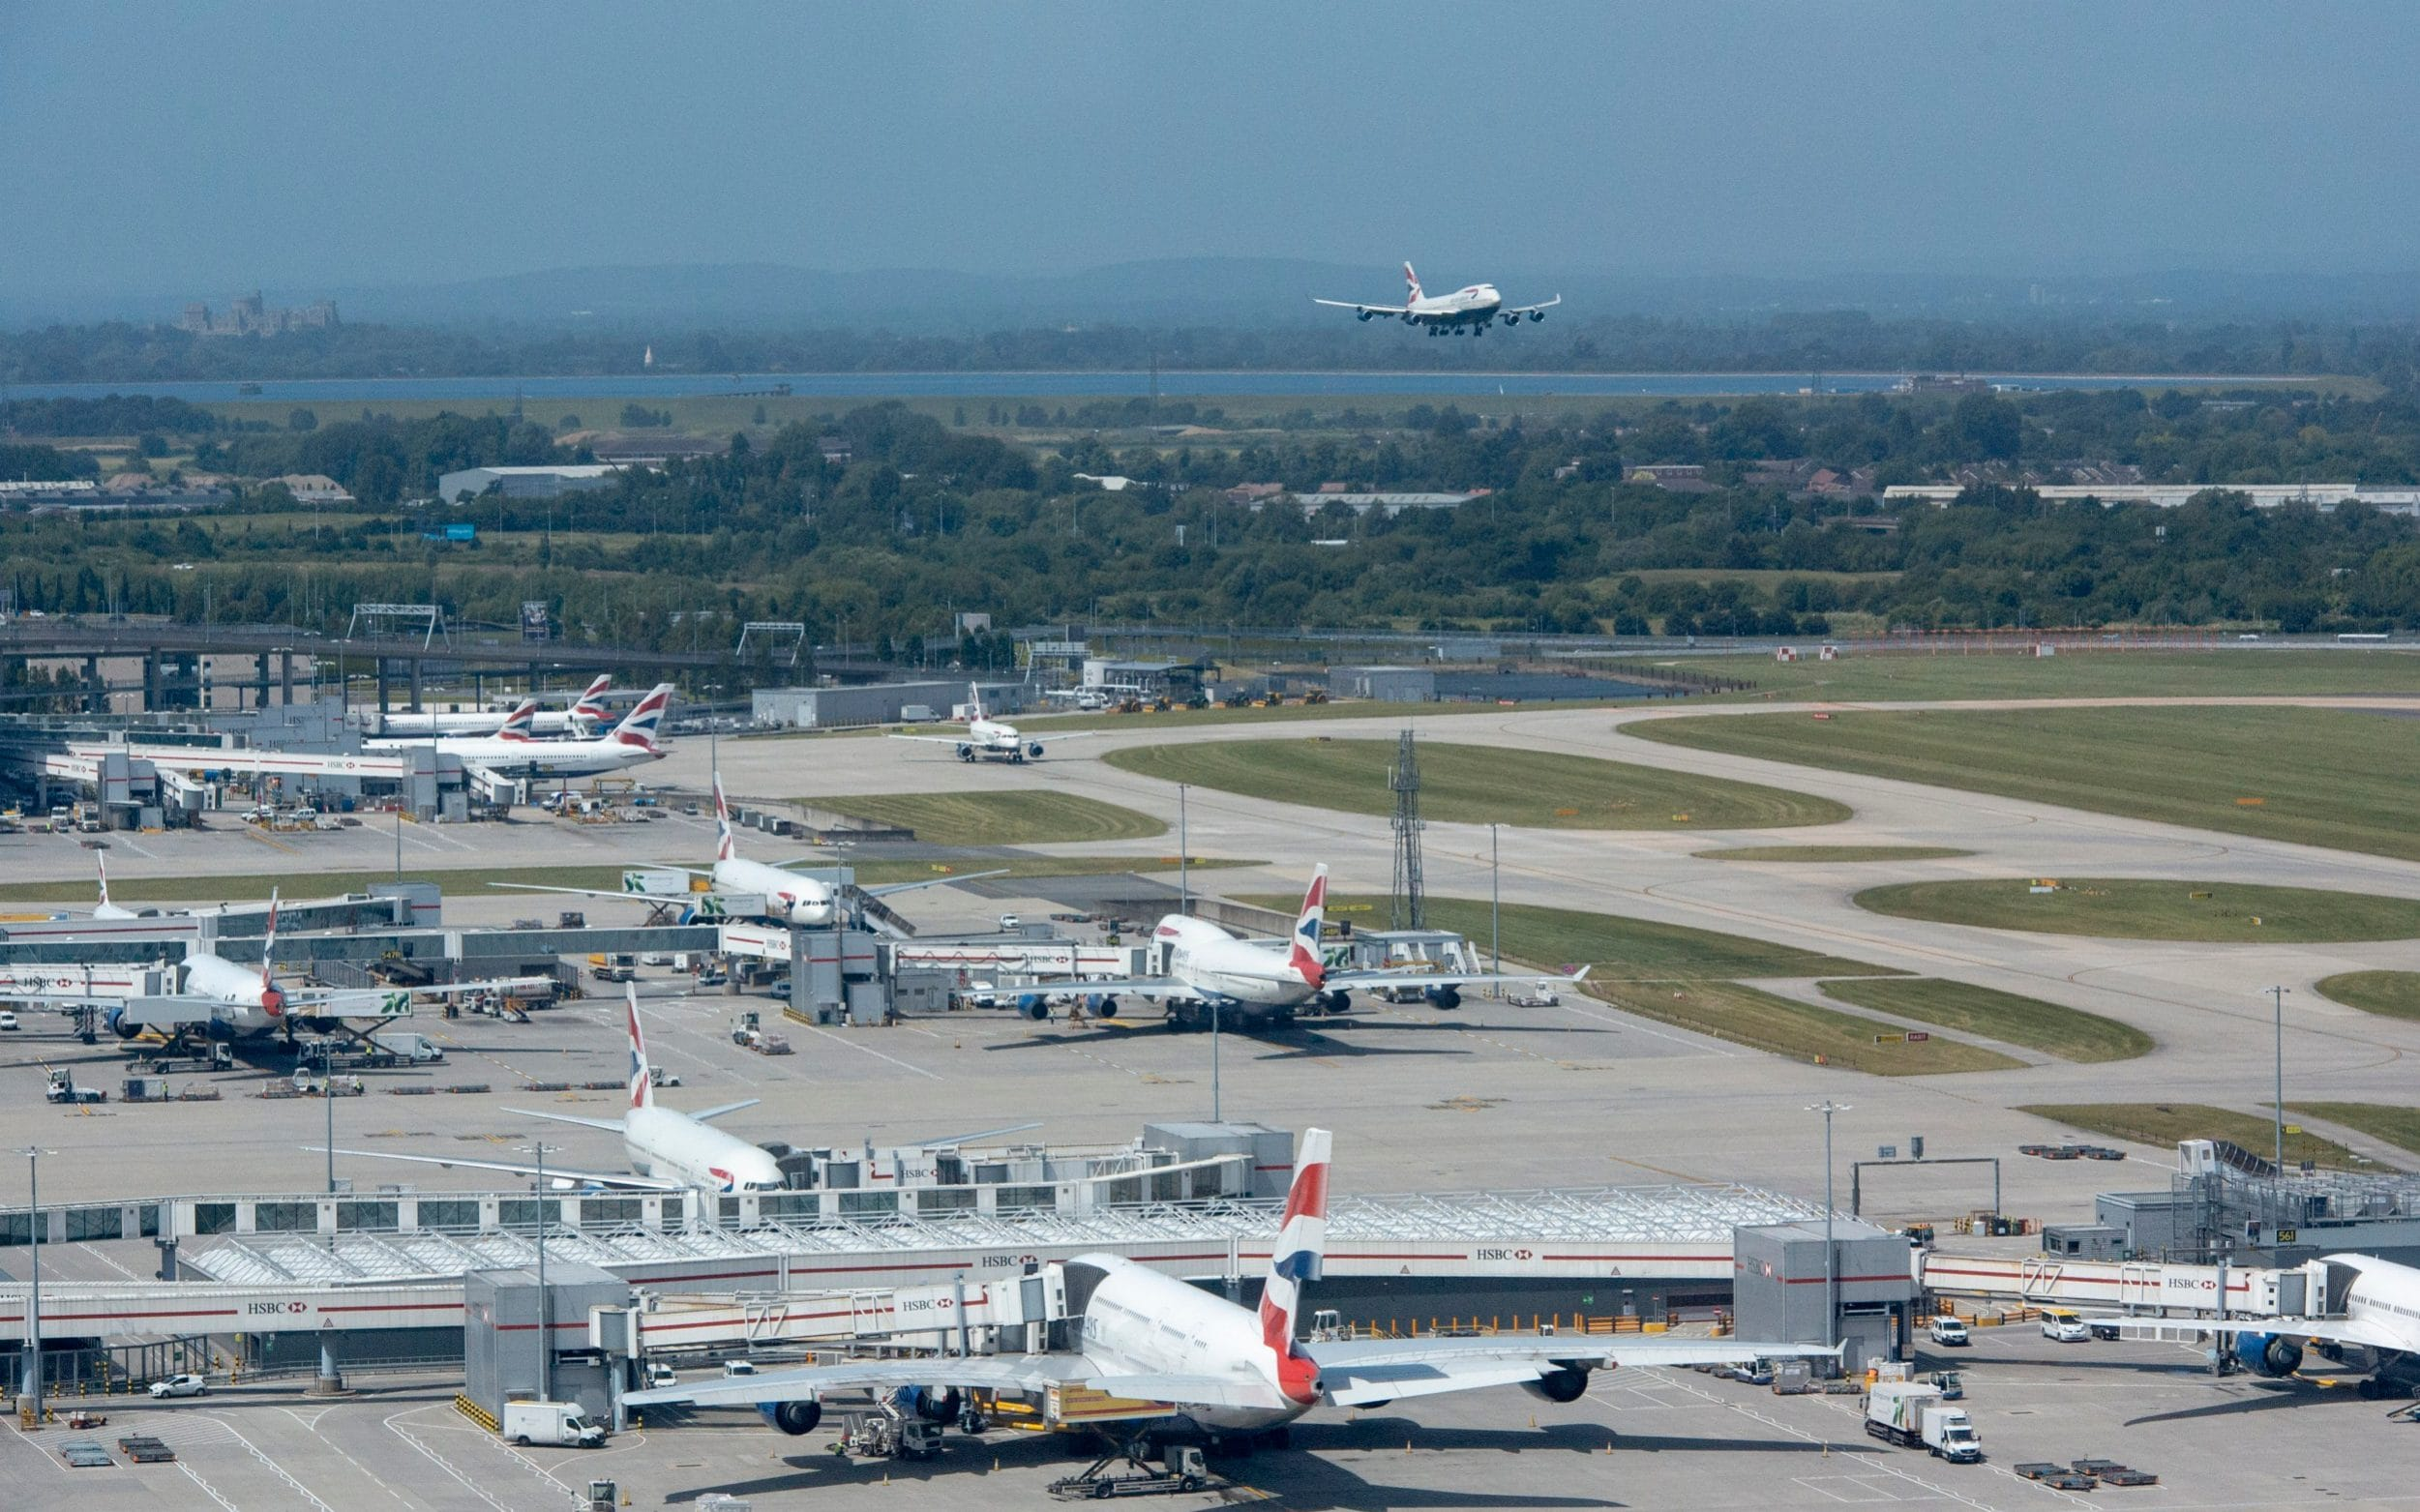 Airport strikes: More than 100 flights cancelled at Heathrow Airport ahead of first wave of walkouts